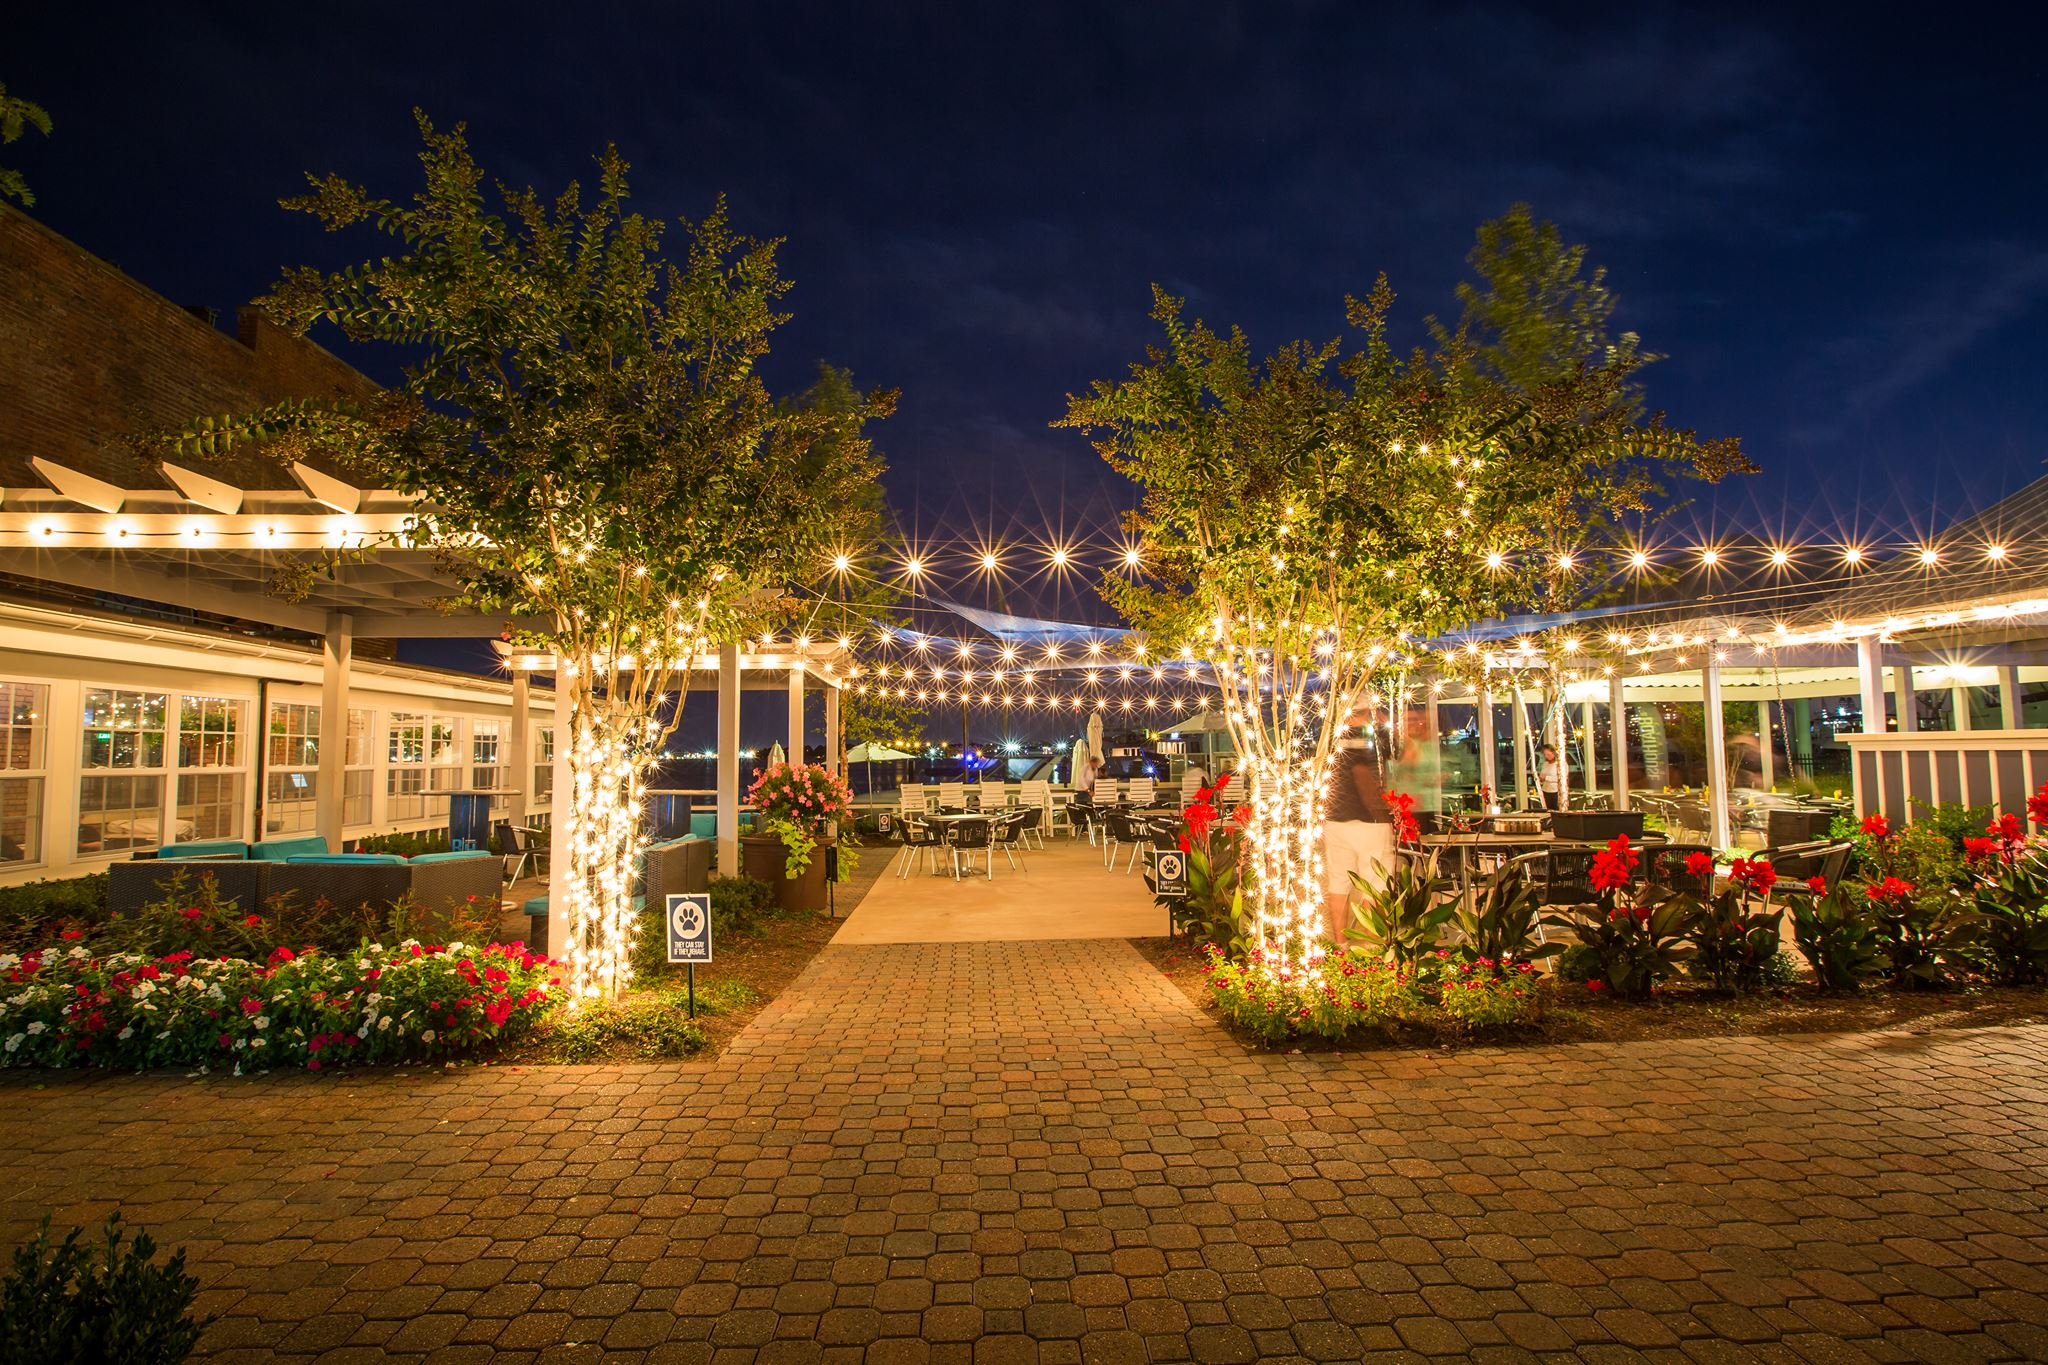 The Boathouse Canton night view